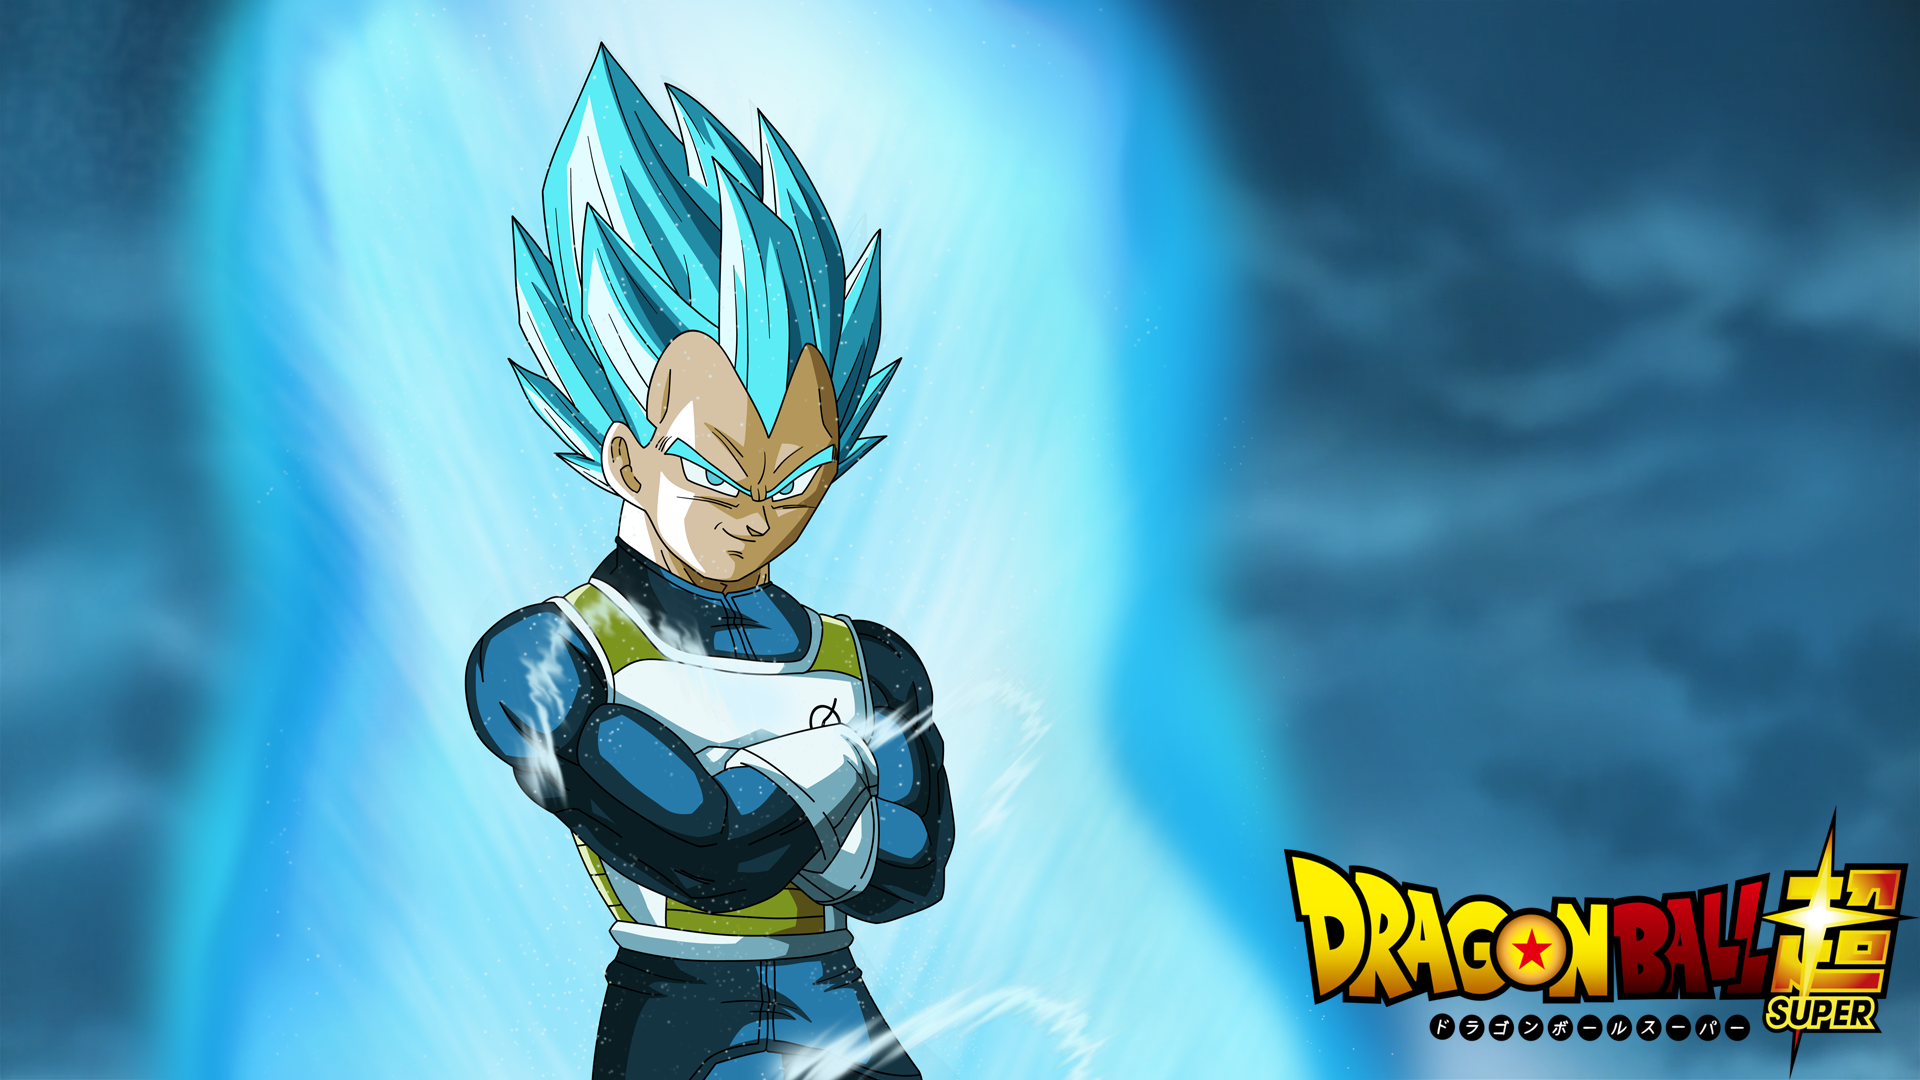 vegeta hd wallpaper download